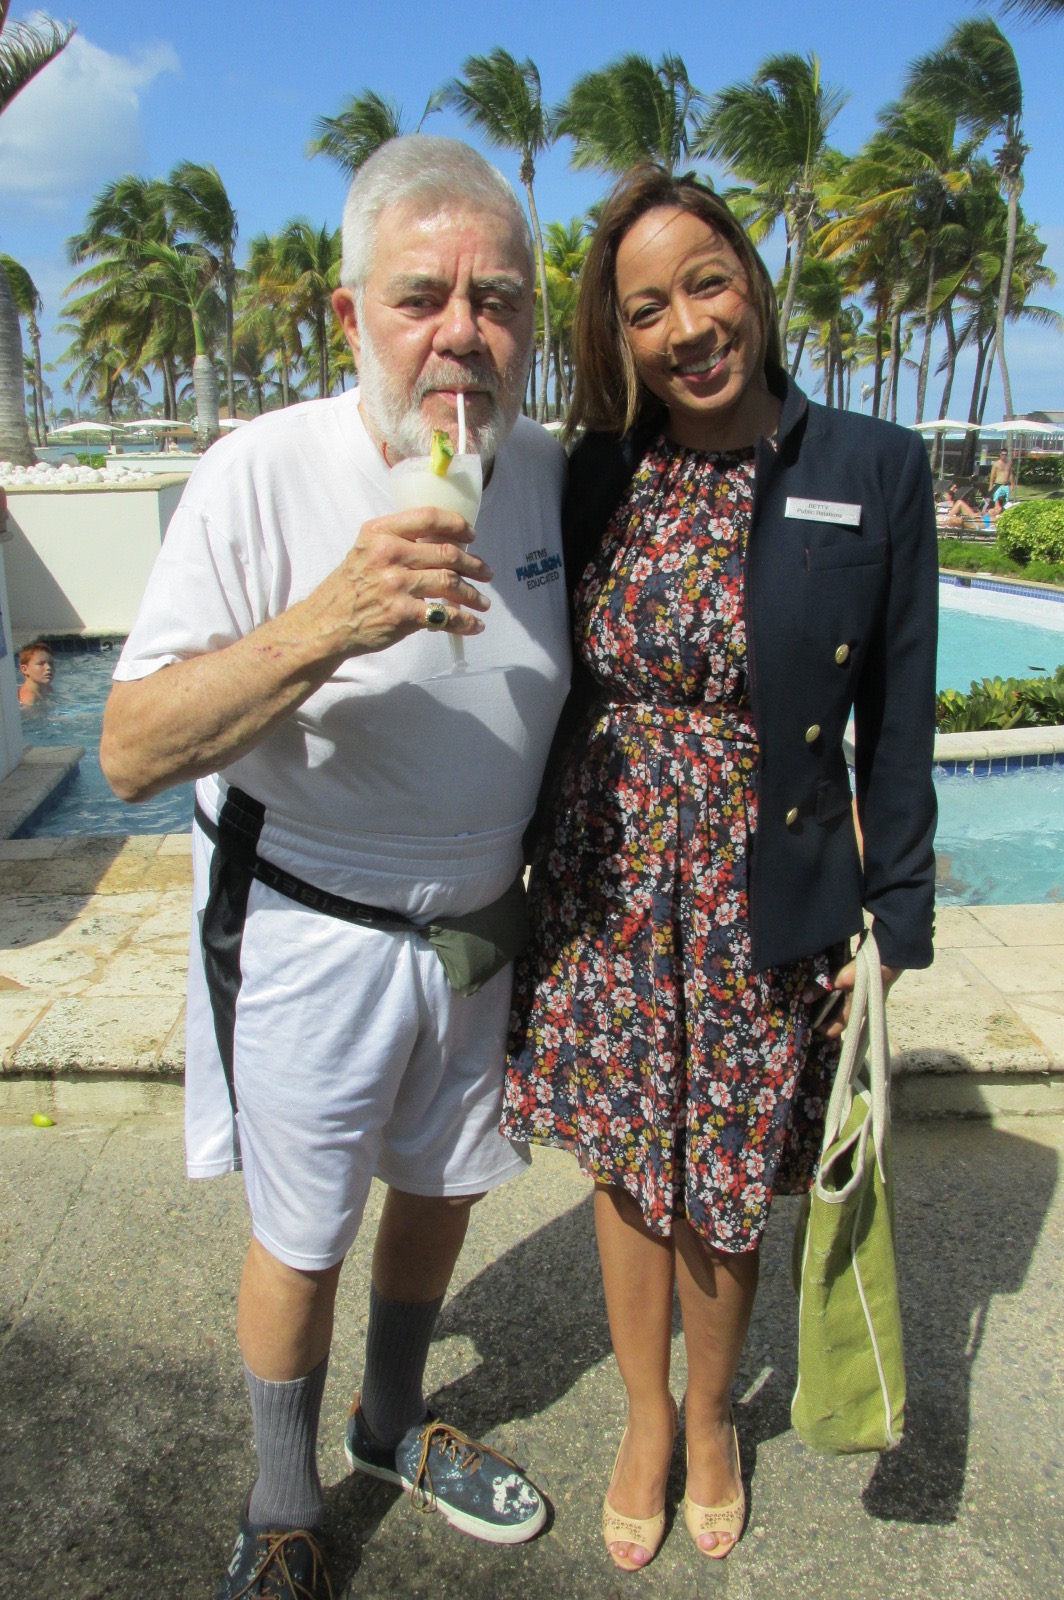 Betty Gonzalez, Caribe Hilton, and Ron with a Pina Colada